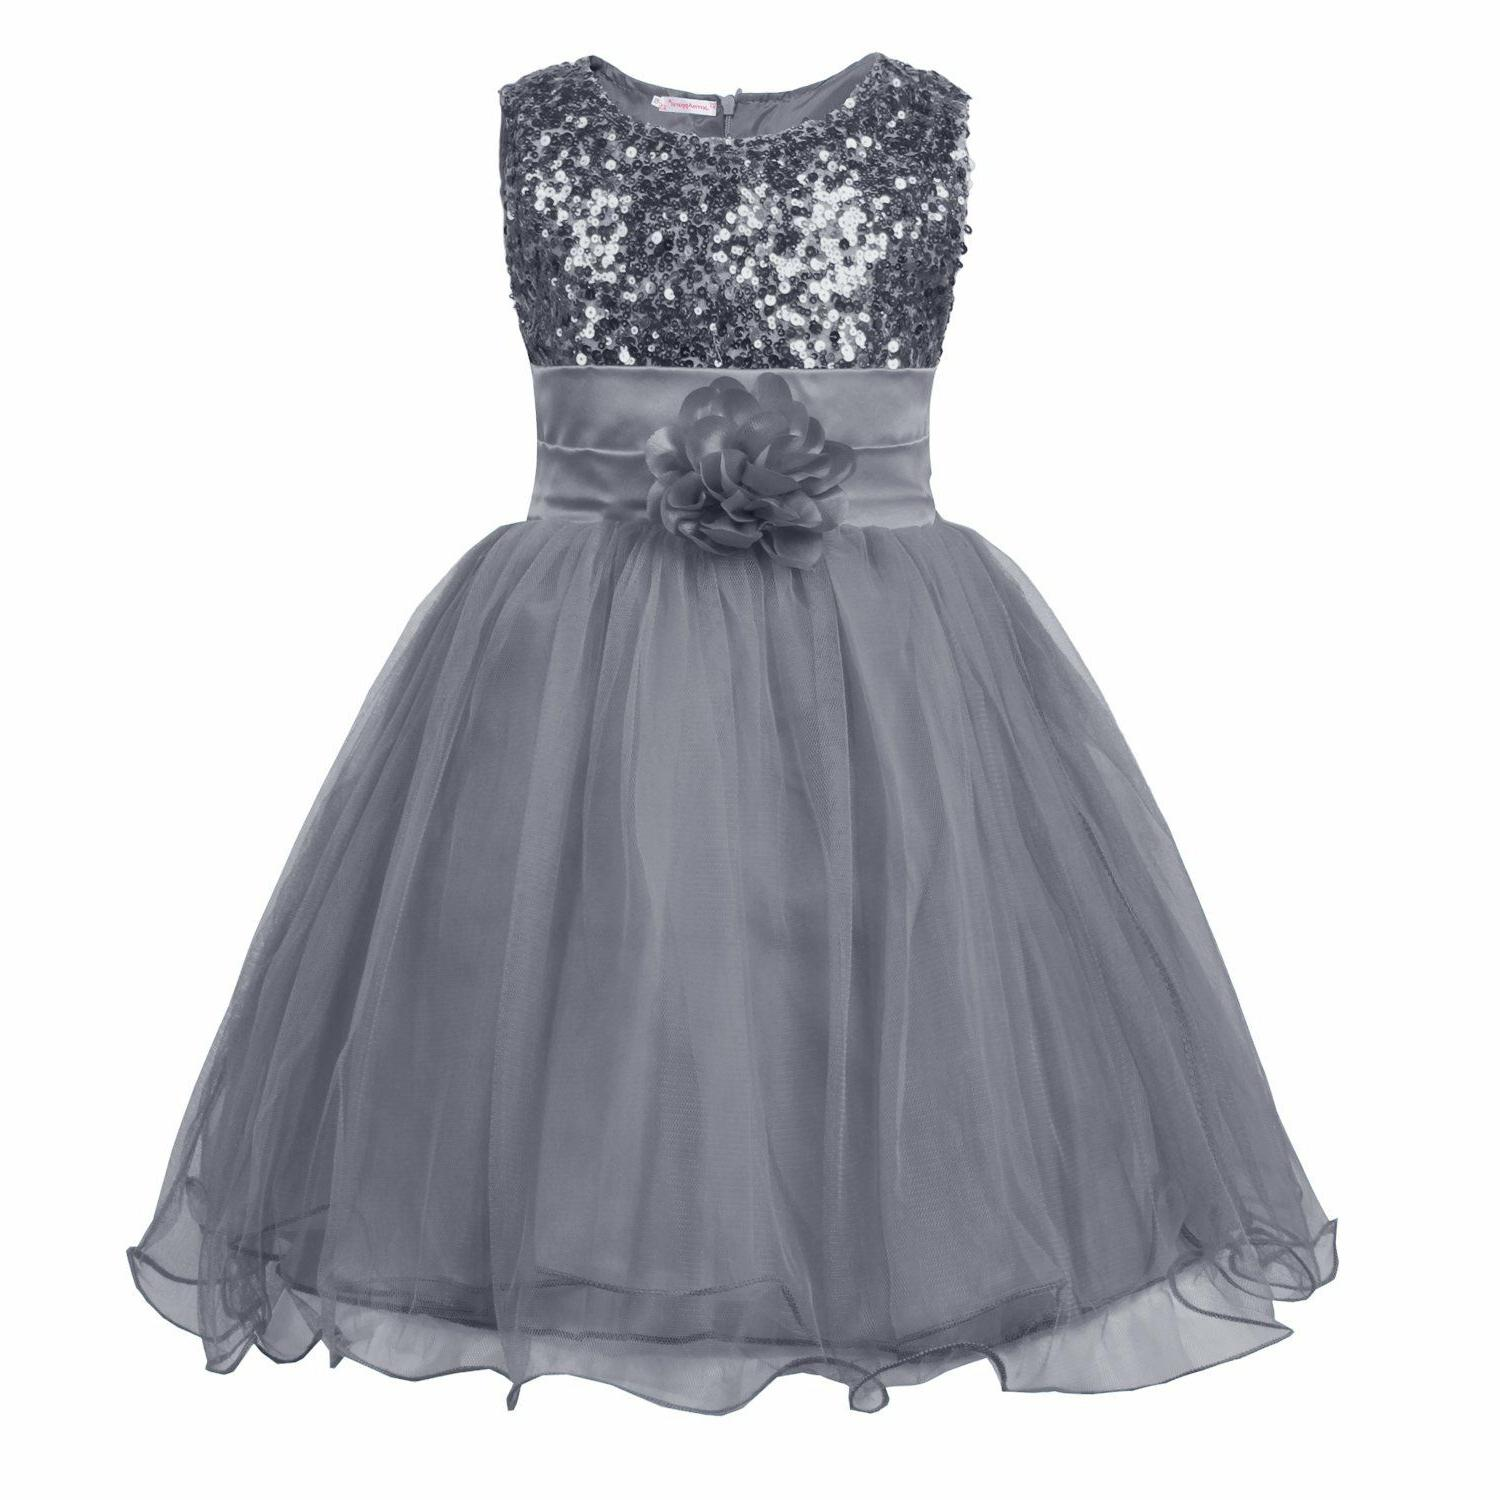 JerrisApparel Girls' Sequin Mesh Flower Party Tulle